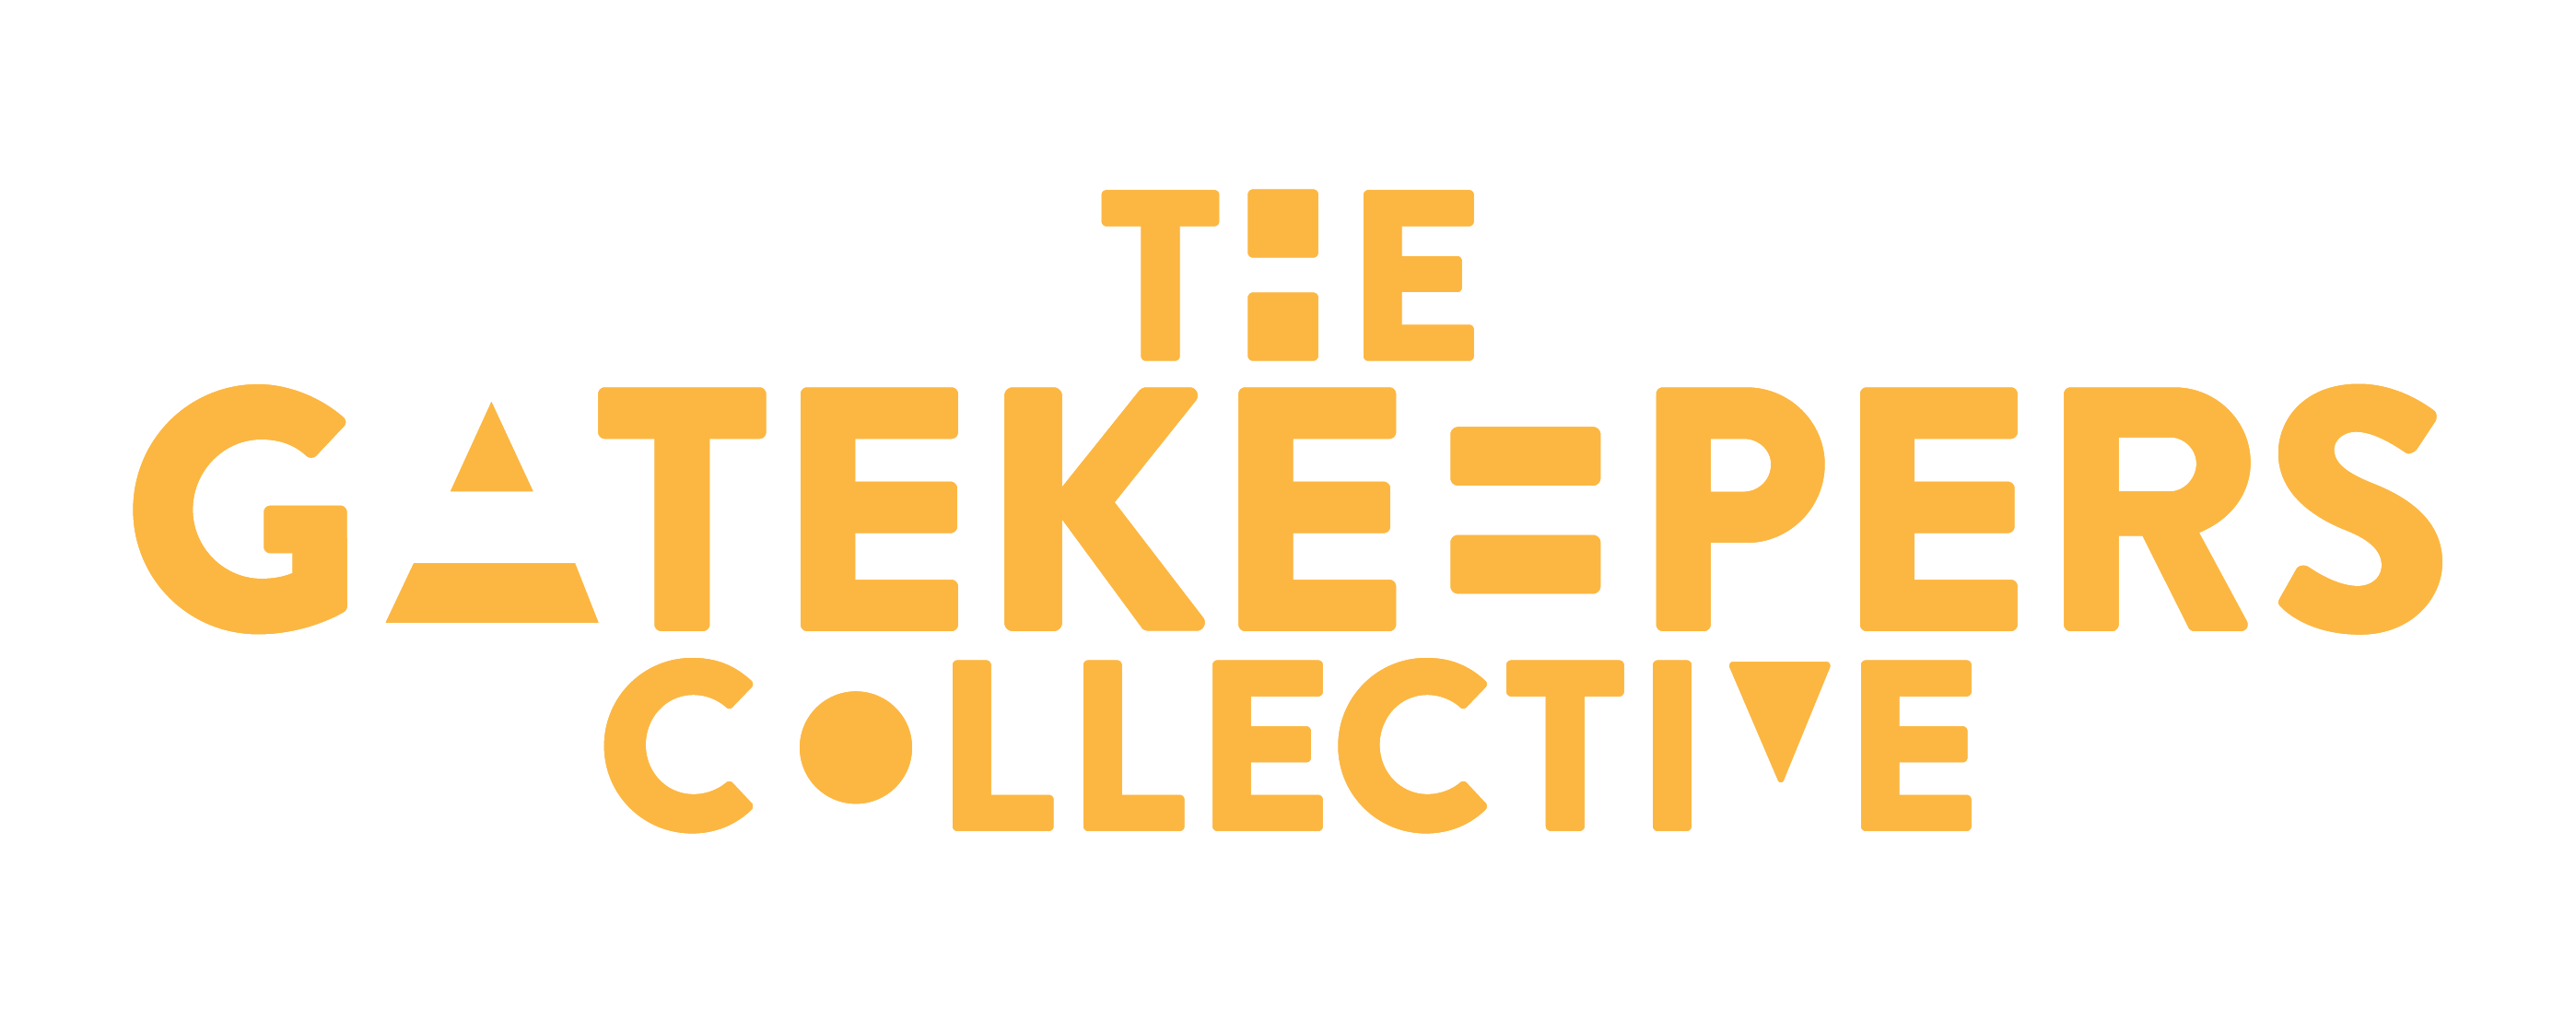 The Gatekeepers Collective